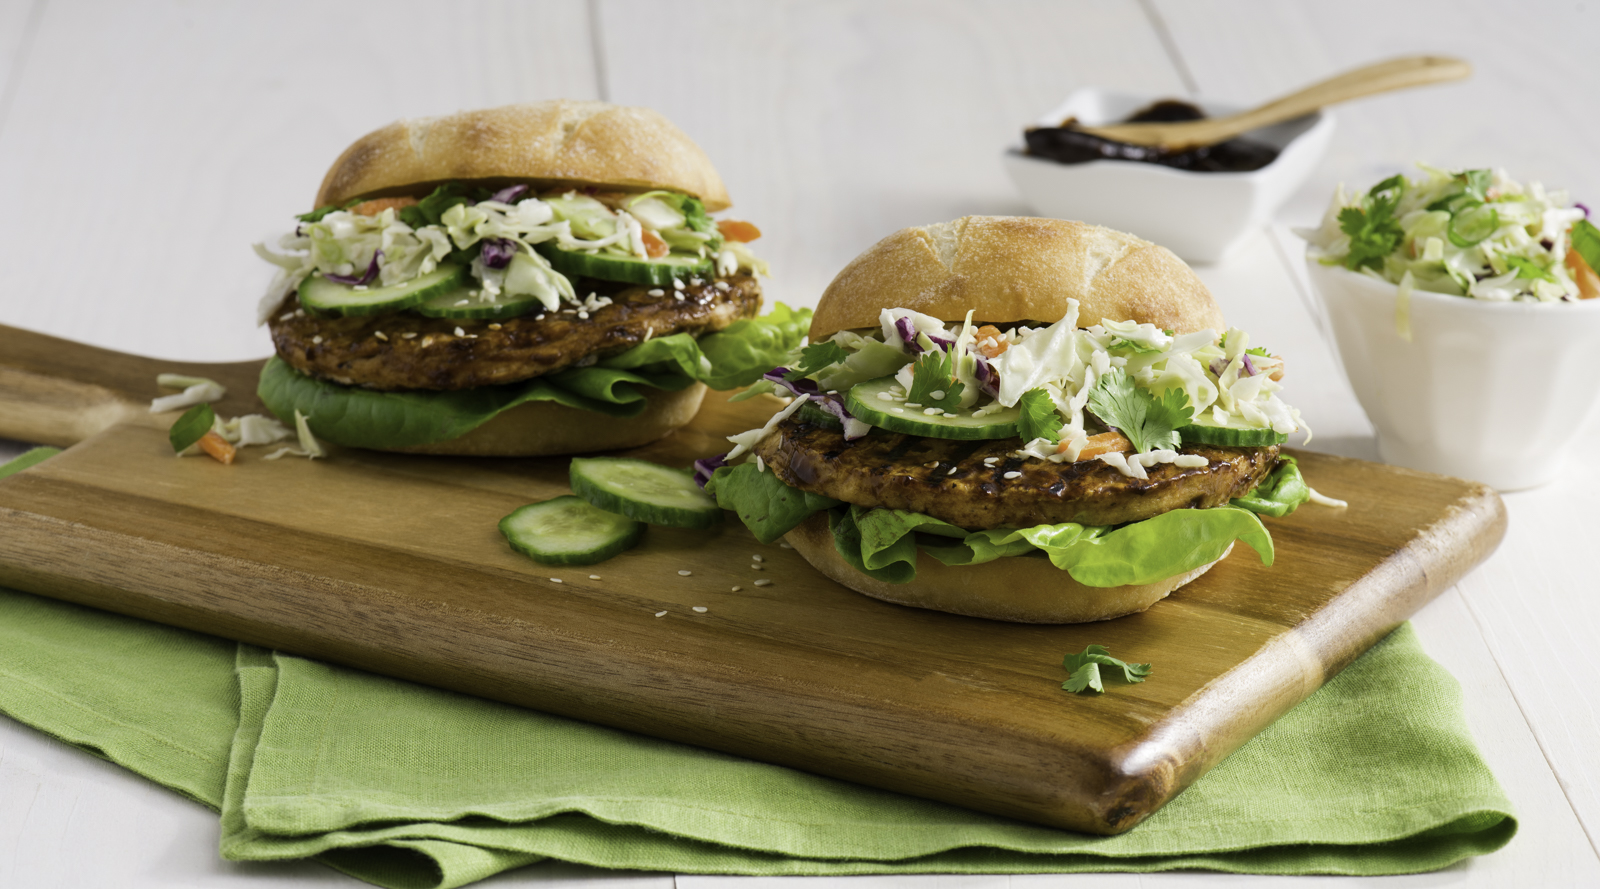 Hoisin Glazed Turkey Burgers